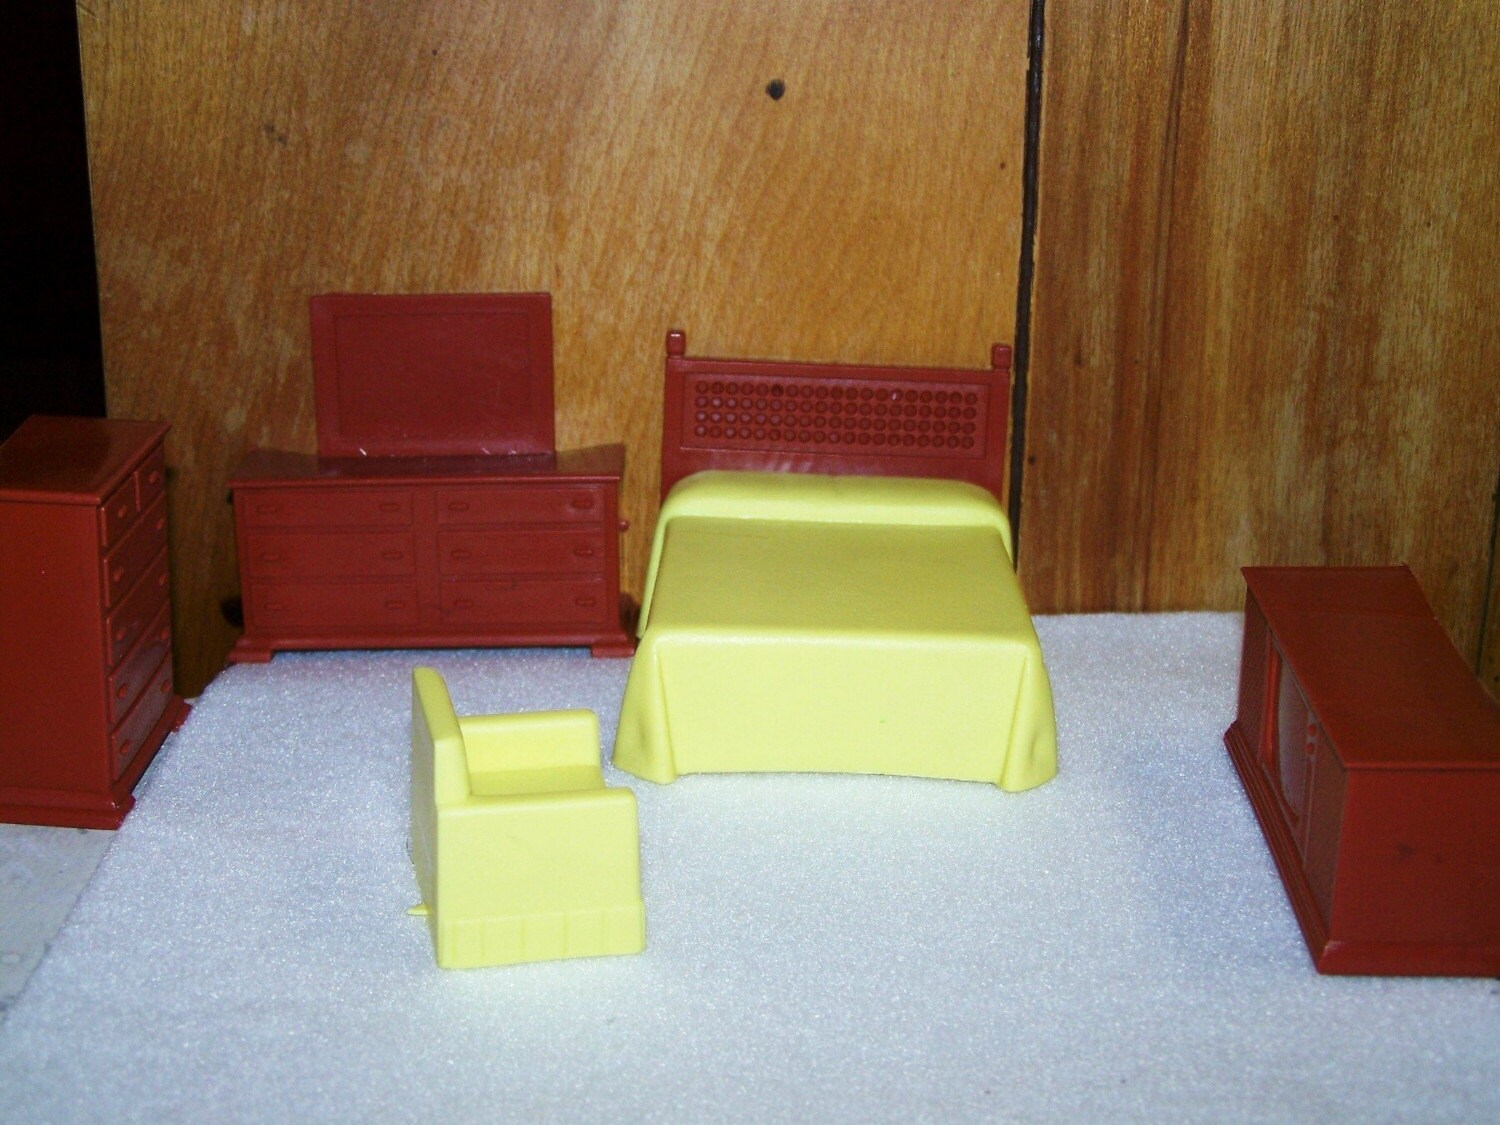 Vintage Plastic Dollhouse Furniture Yellow And Brown Bedroom